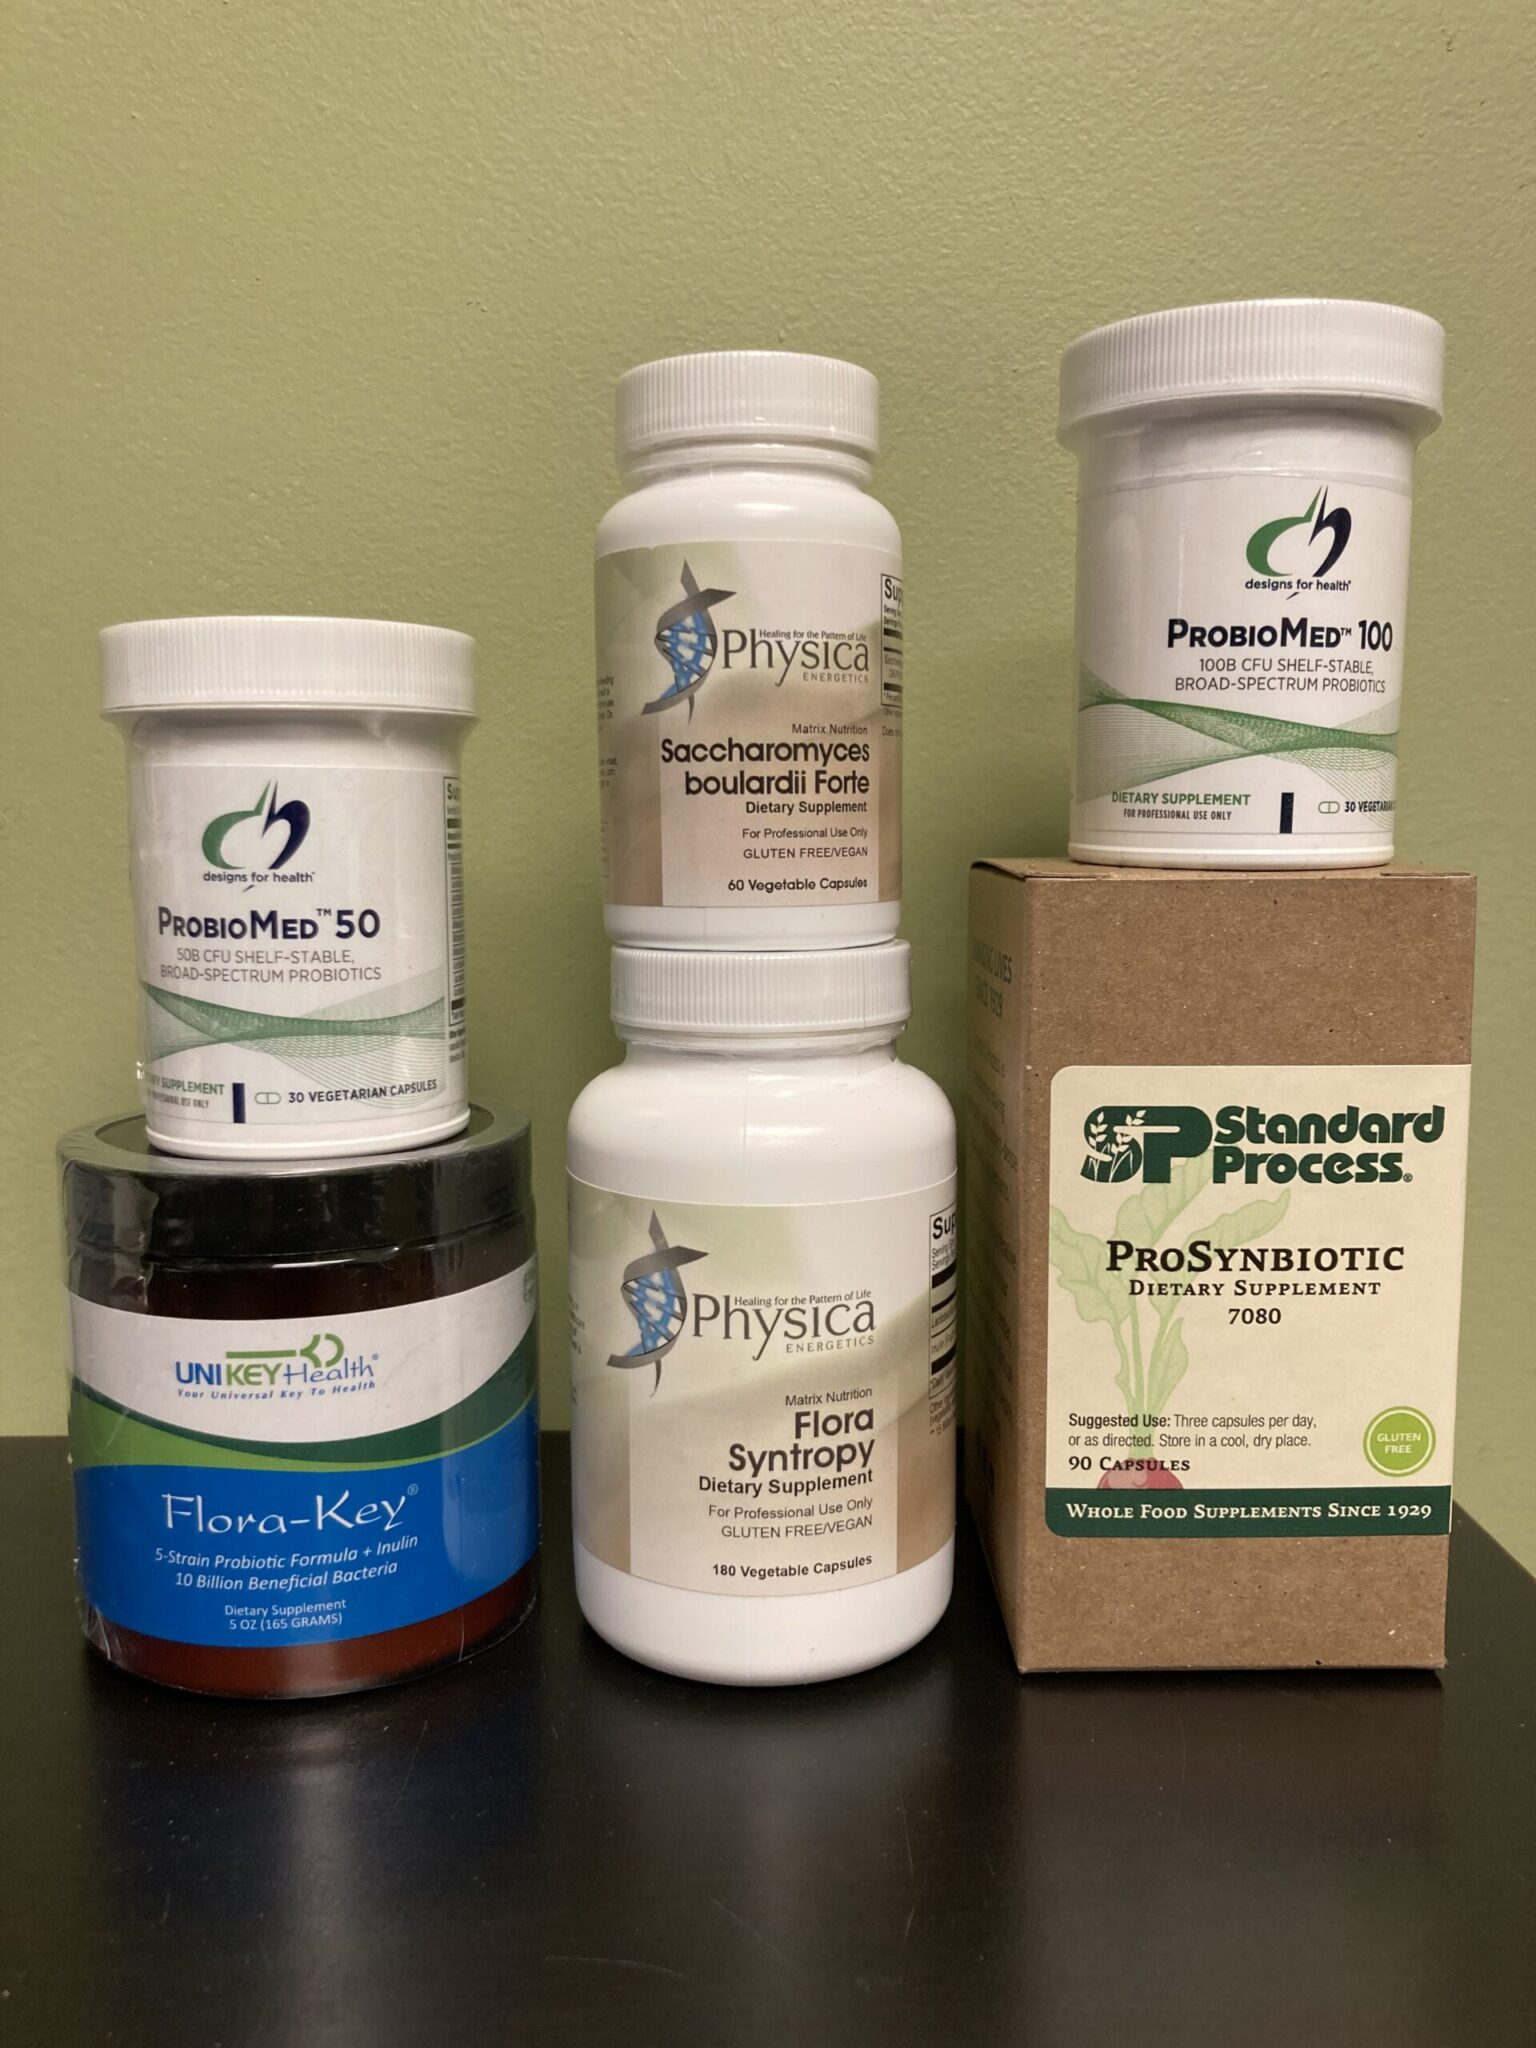 February 2021 Newsletter: Hype or Not? Are Probiotics Really Good for You?